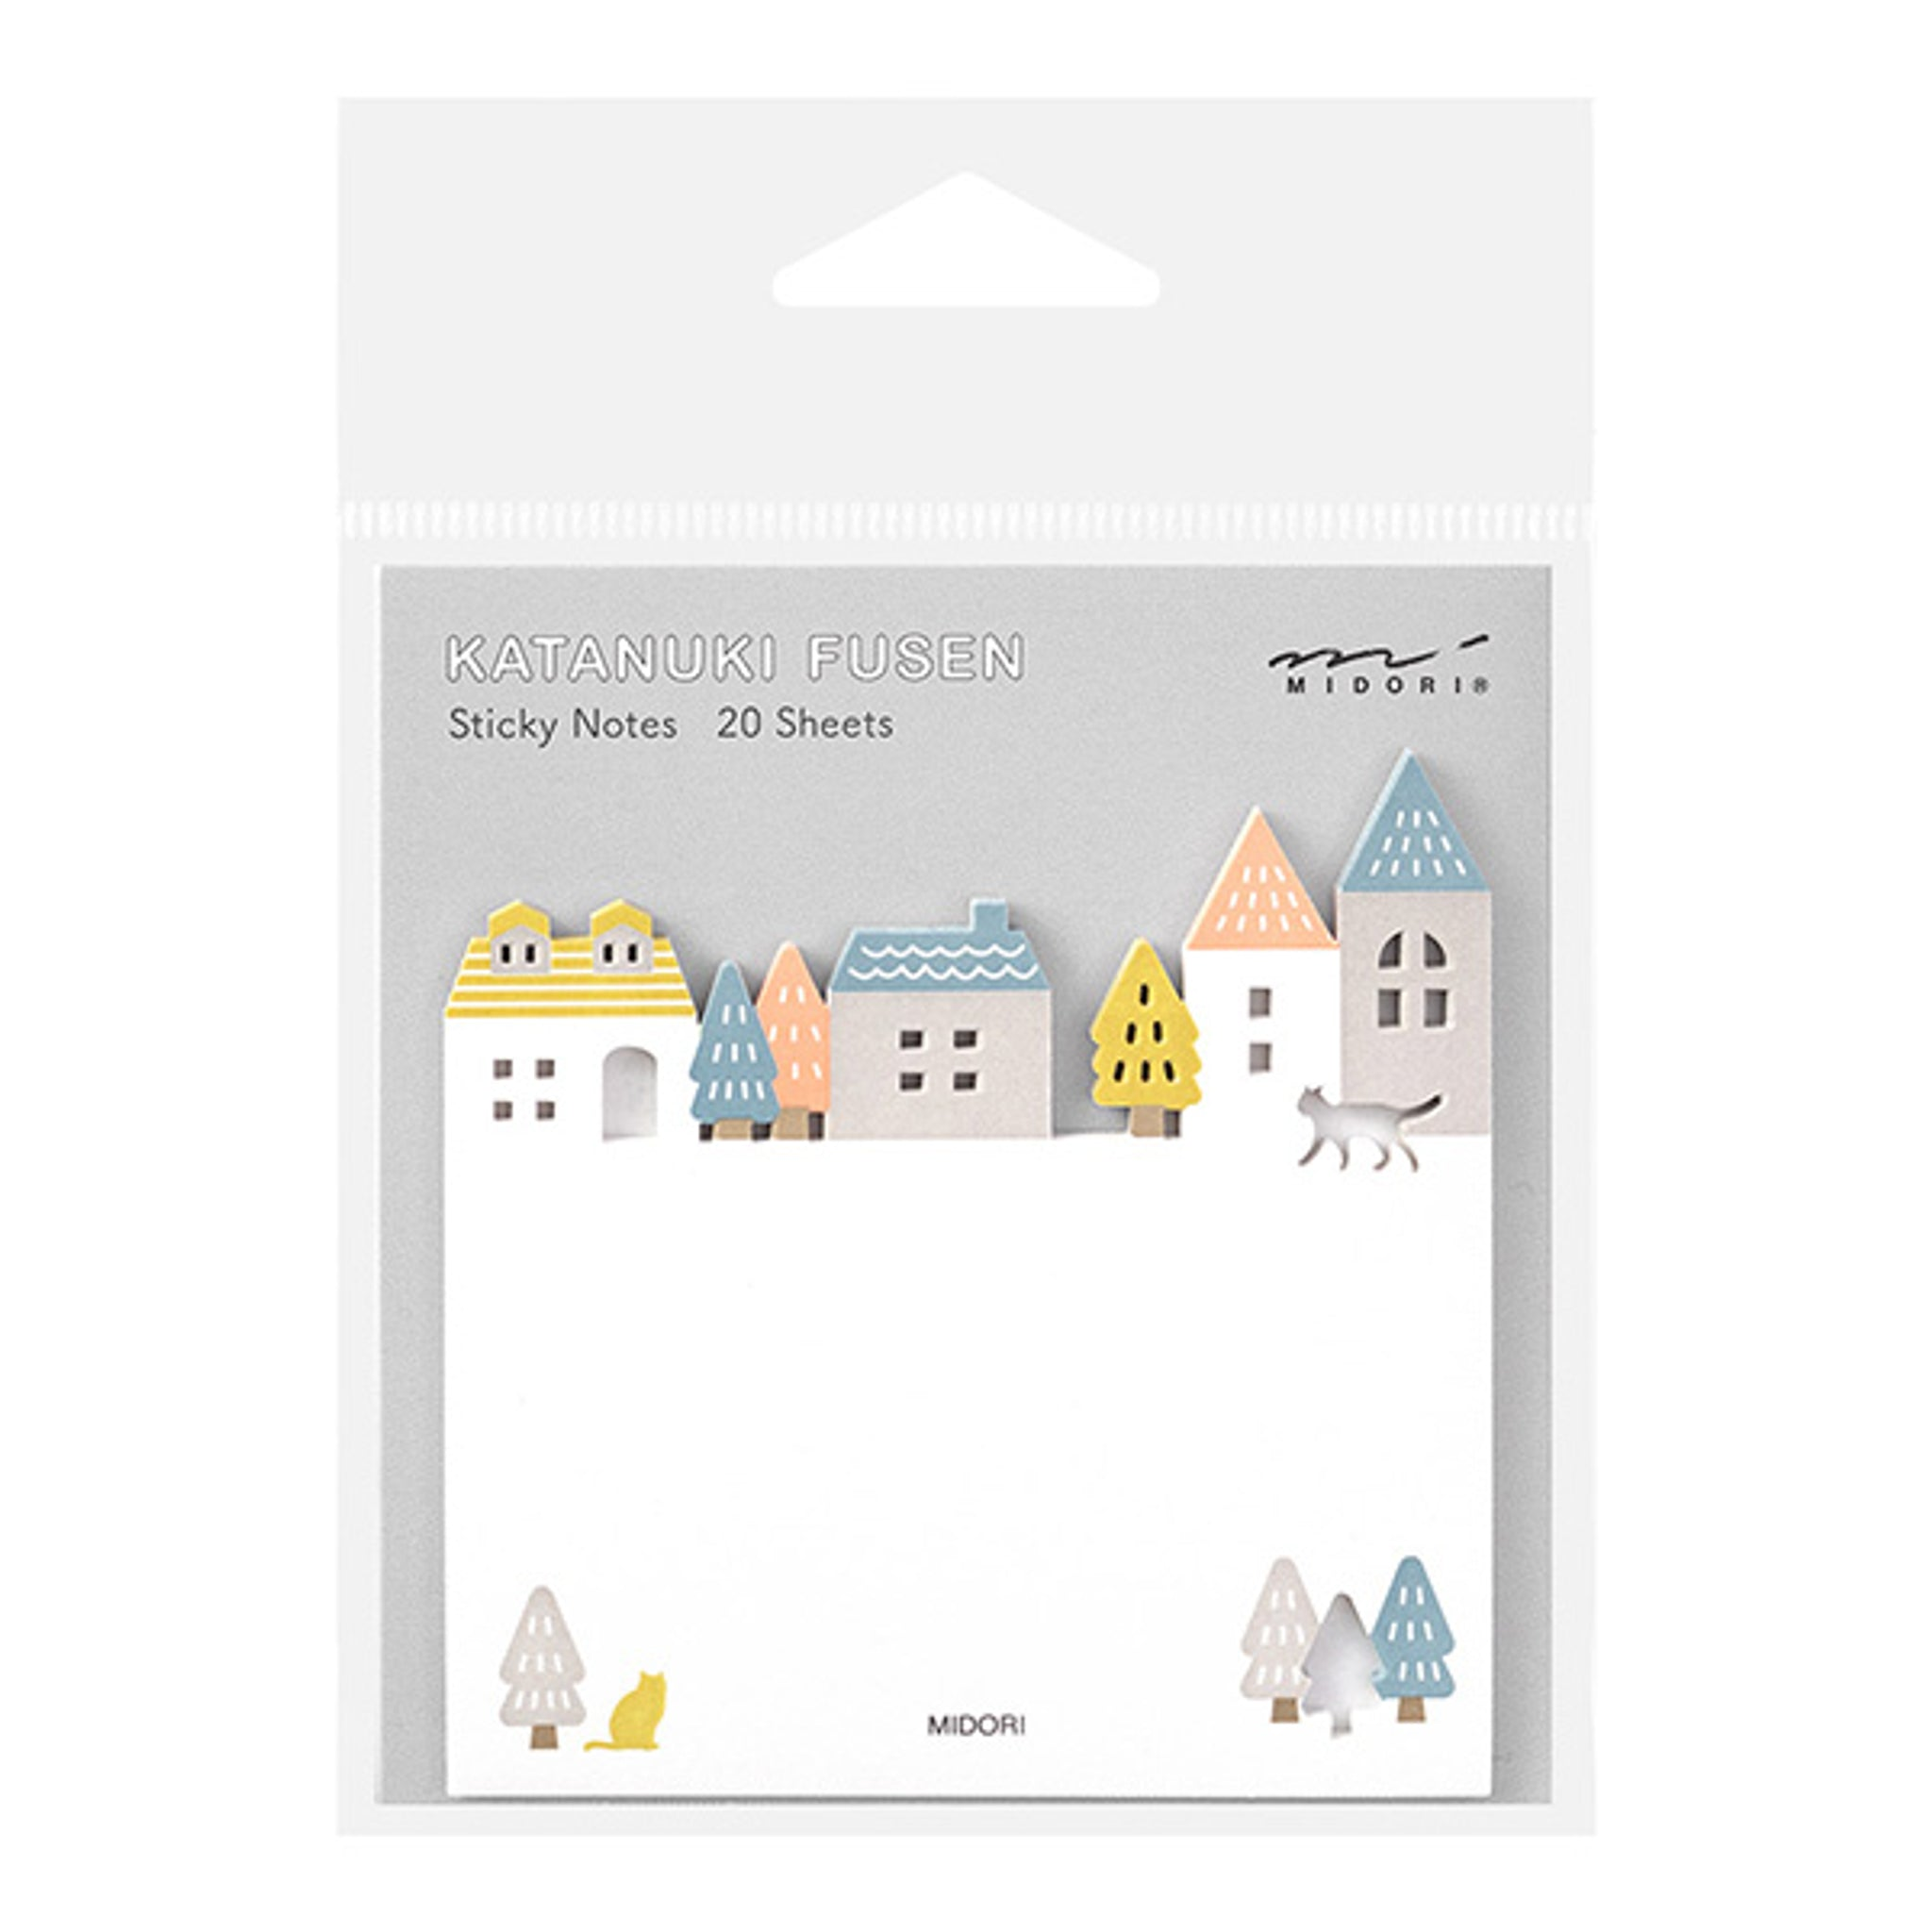 Midori Sticky Notes Die-Cutting Town